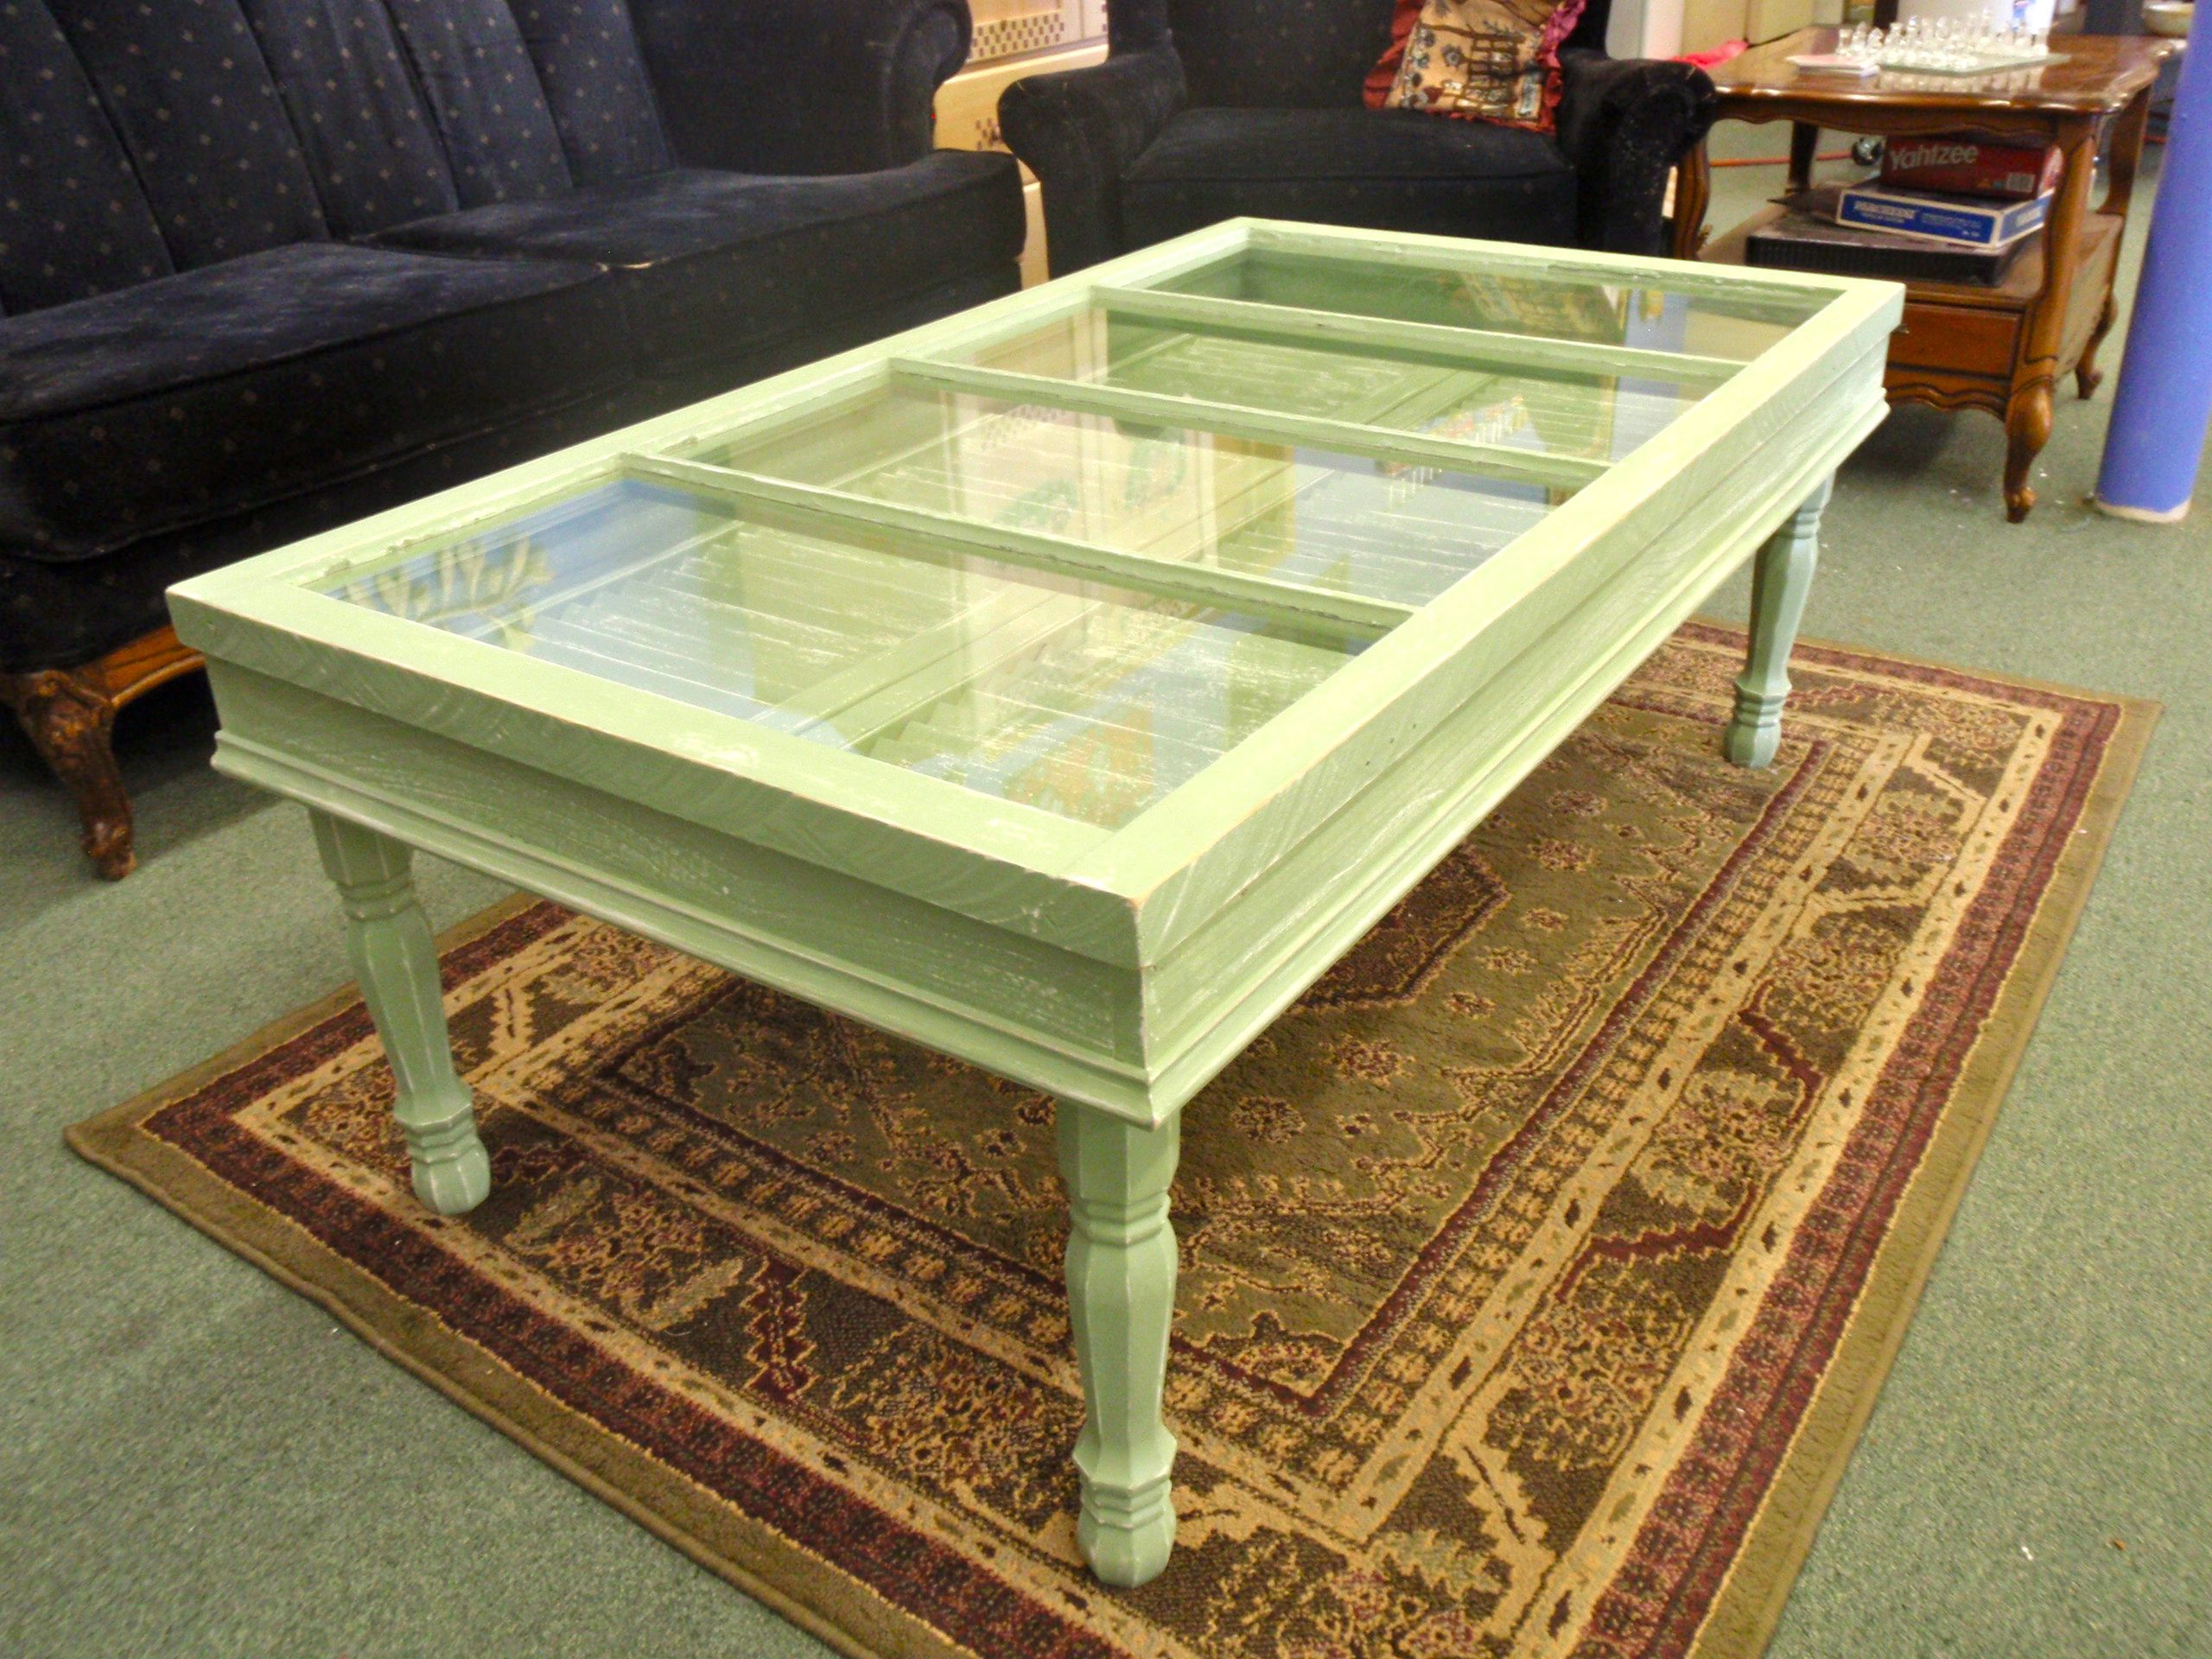 This Is An Awesome Coffee Table My Hubby Made For Me Down At My Store Out Of Old Shutters And An Old Win Cool Coffee Tables Coffee Table Painted Coffee Tables